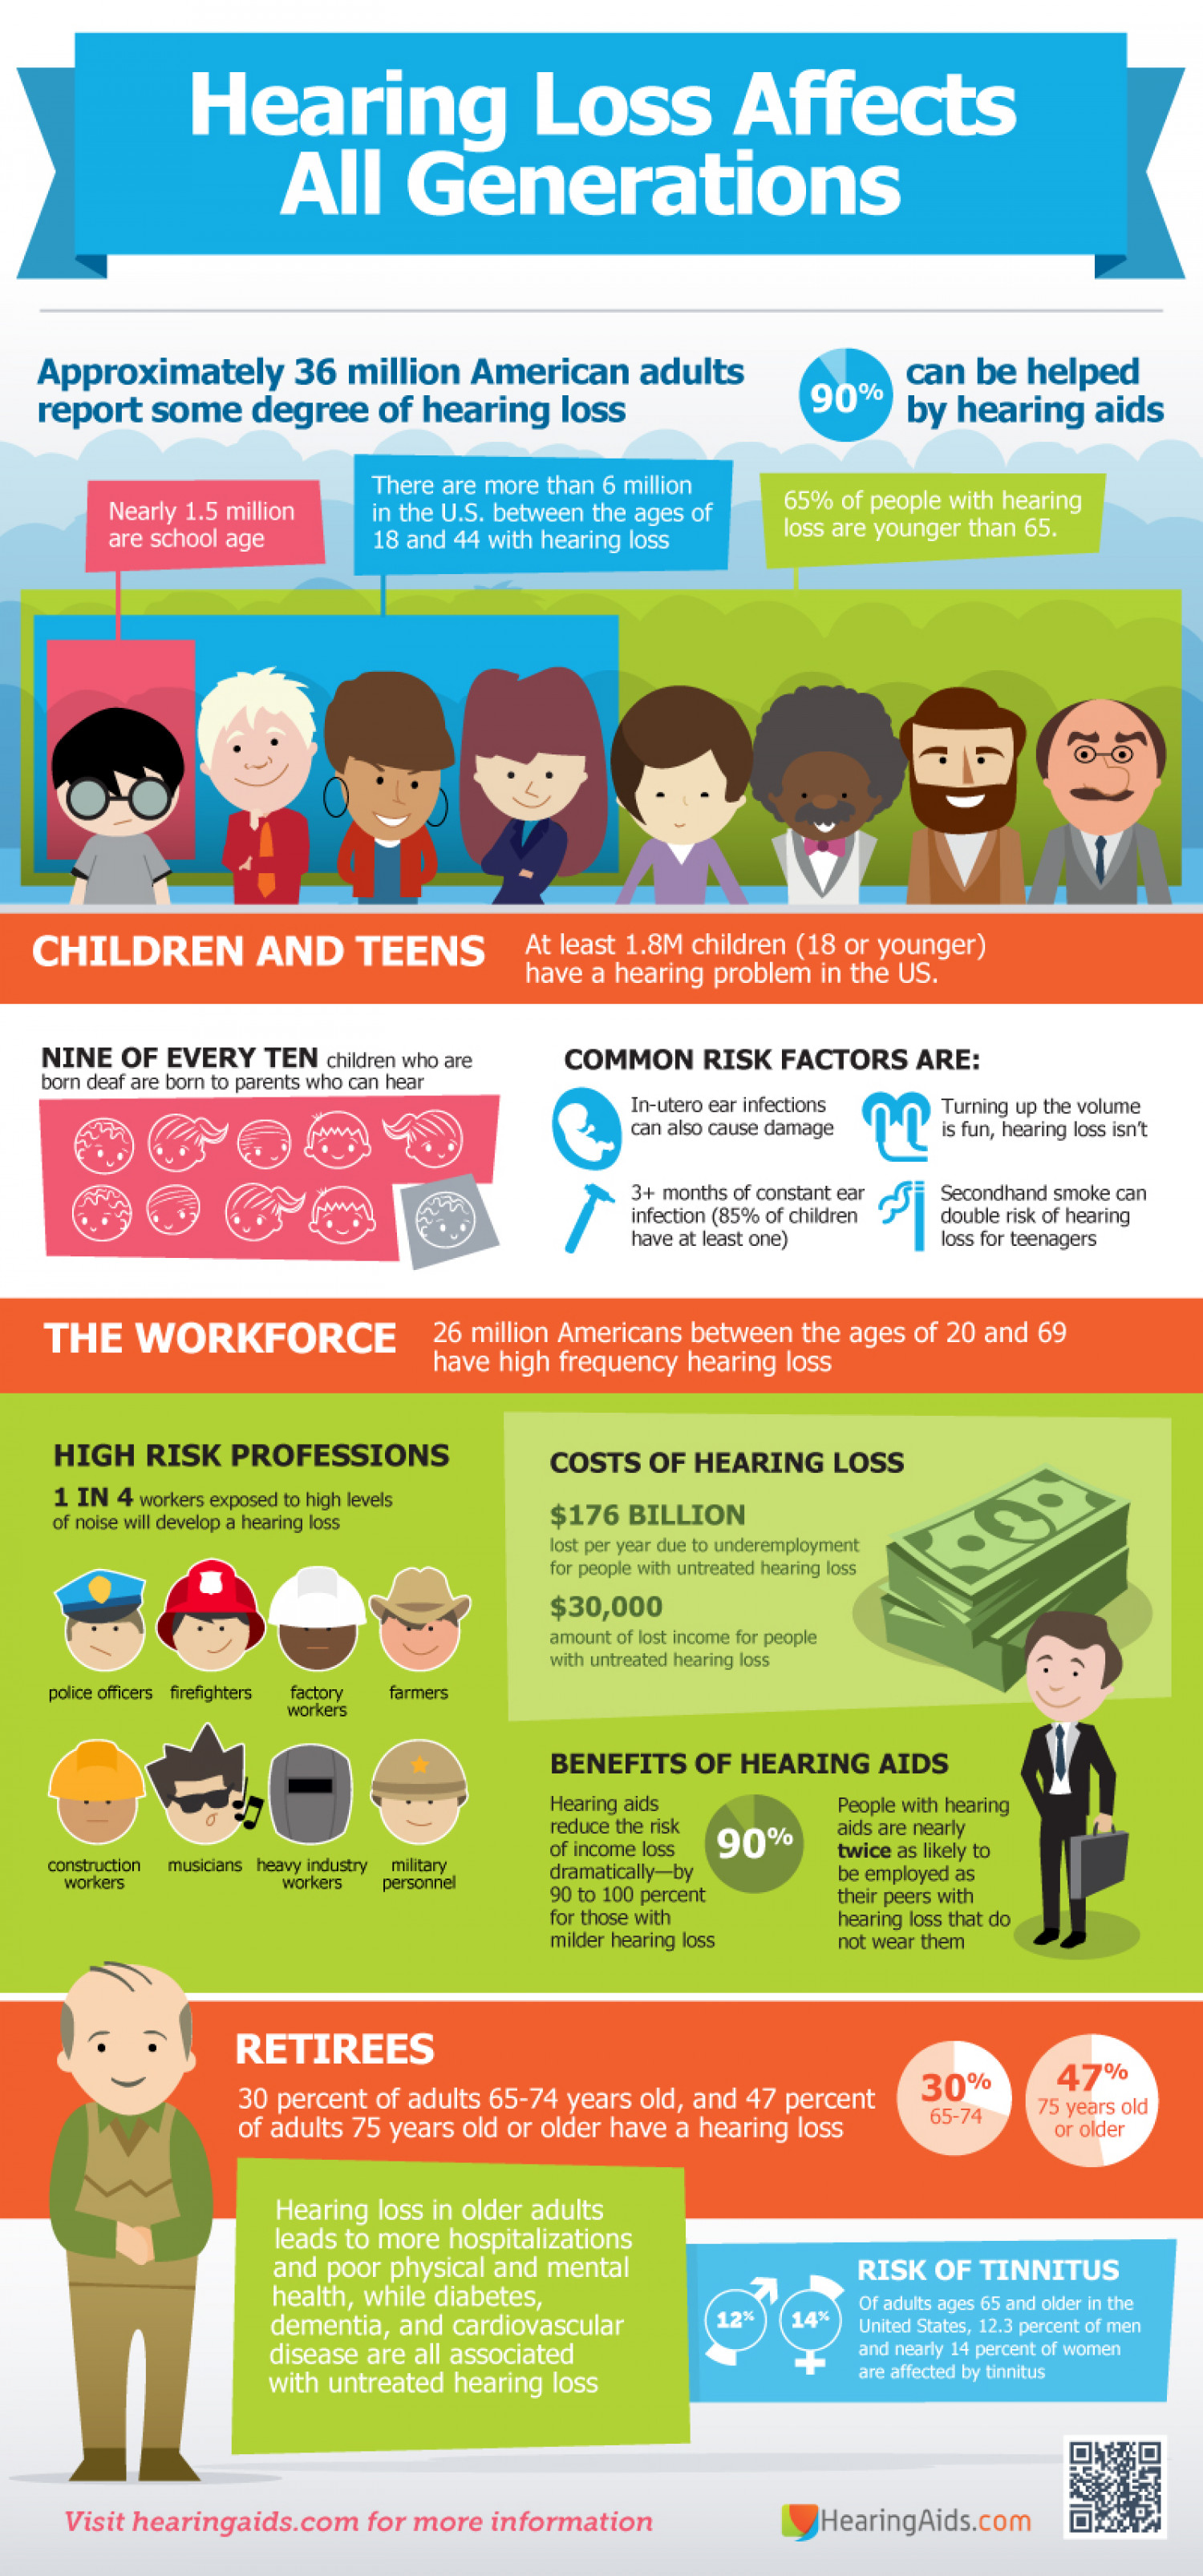 Hearing Loss Affects All Generations Infographic